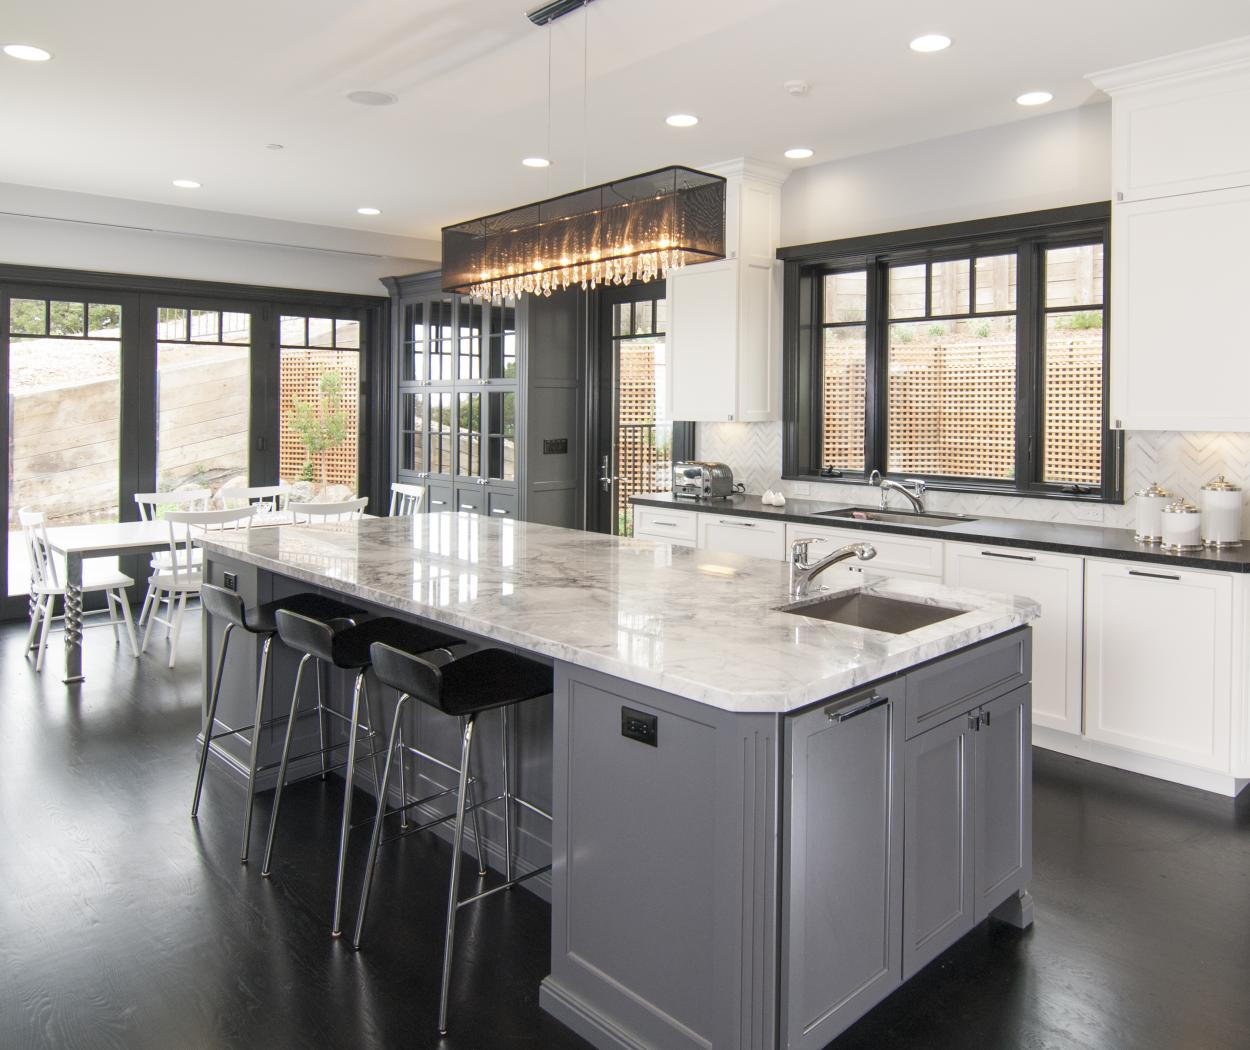 Transitional White Kitchen with a Beautiful Grey Island, Marble Counter Tops, Glass Doors and Silver Hardware